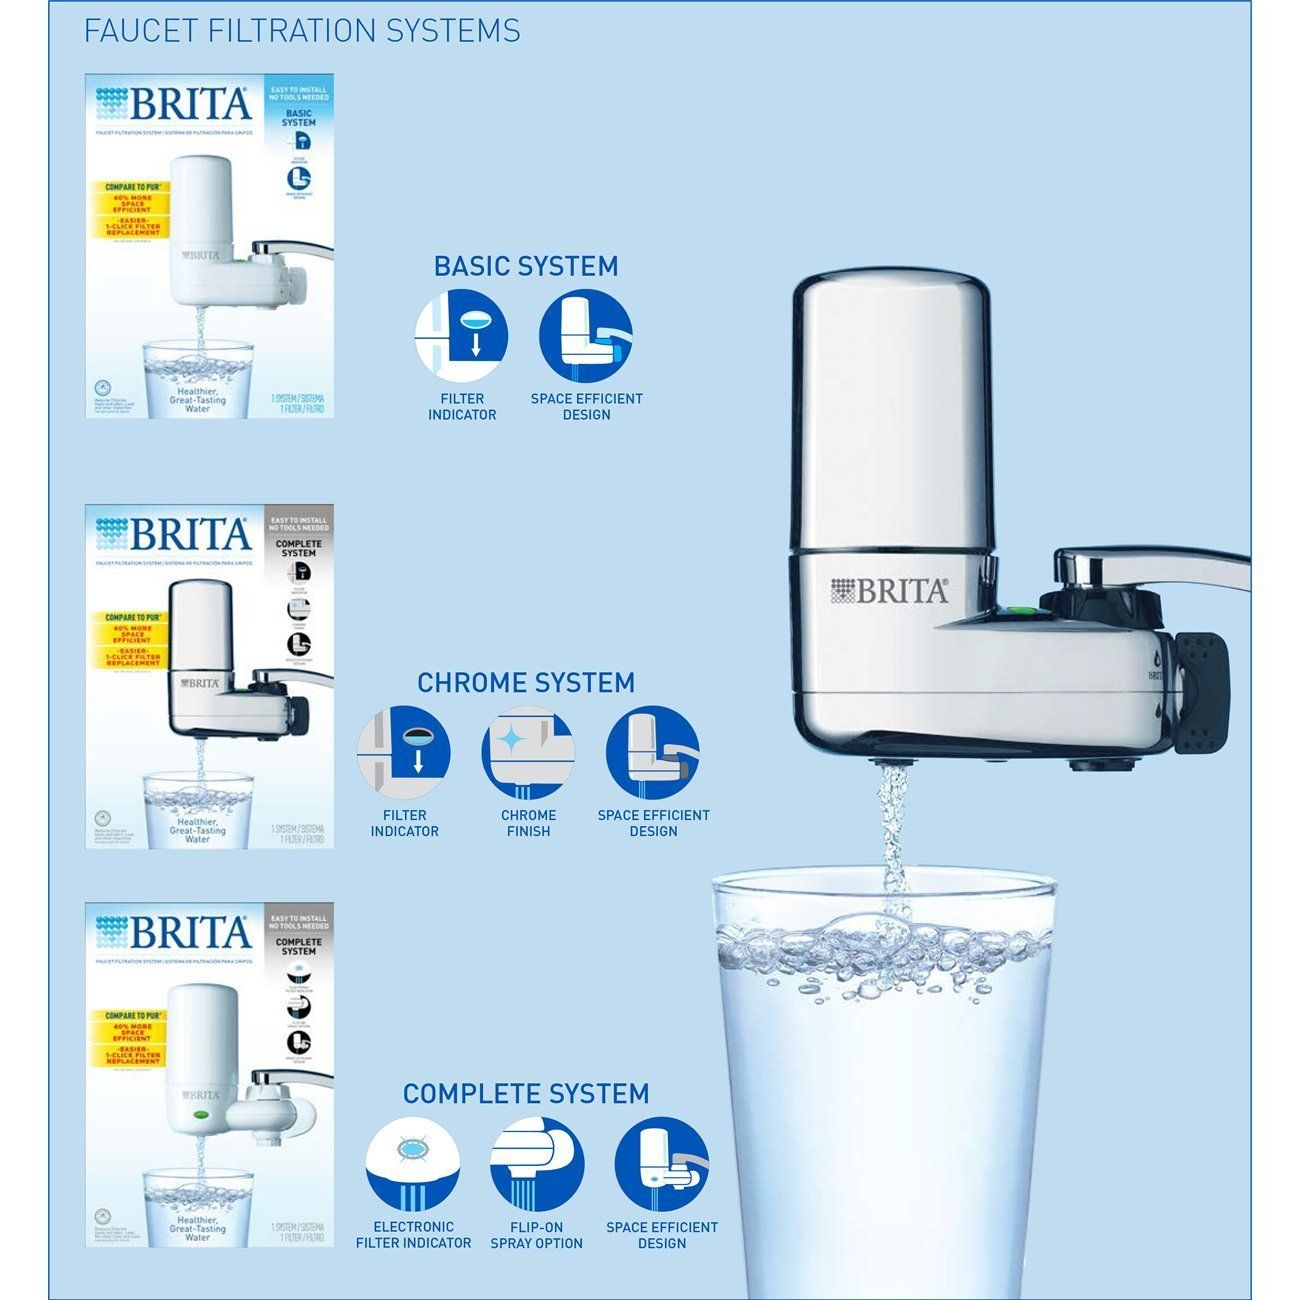 brita faucet water filter system with